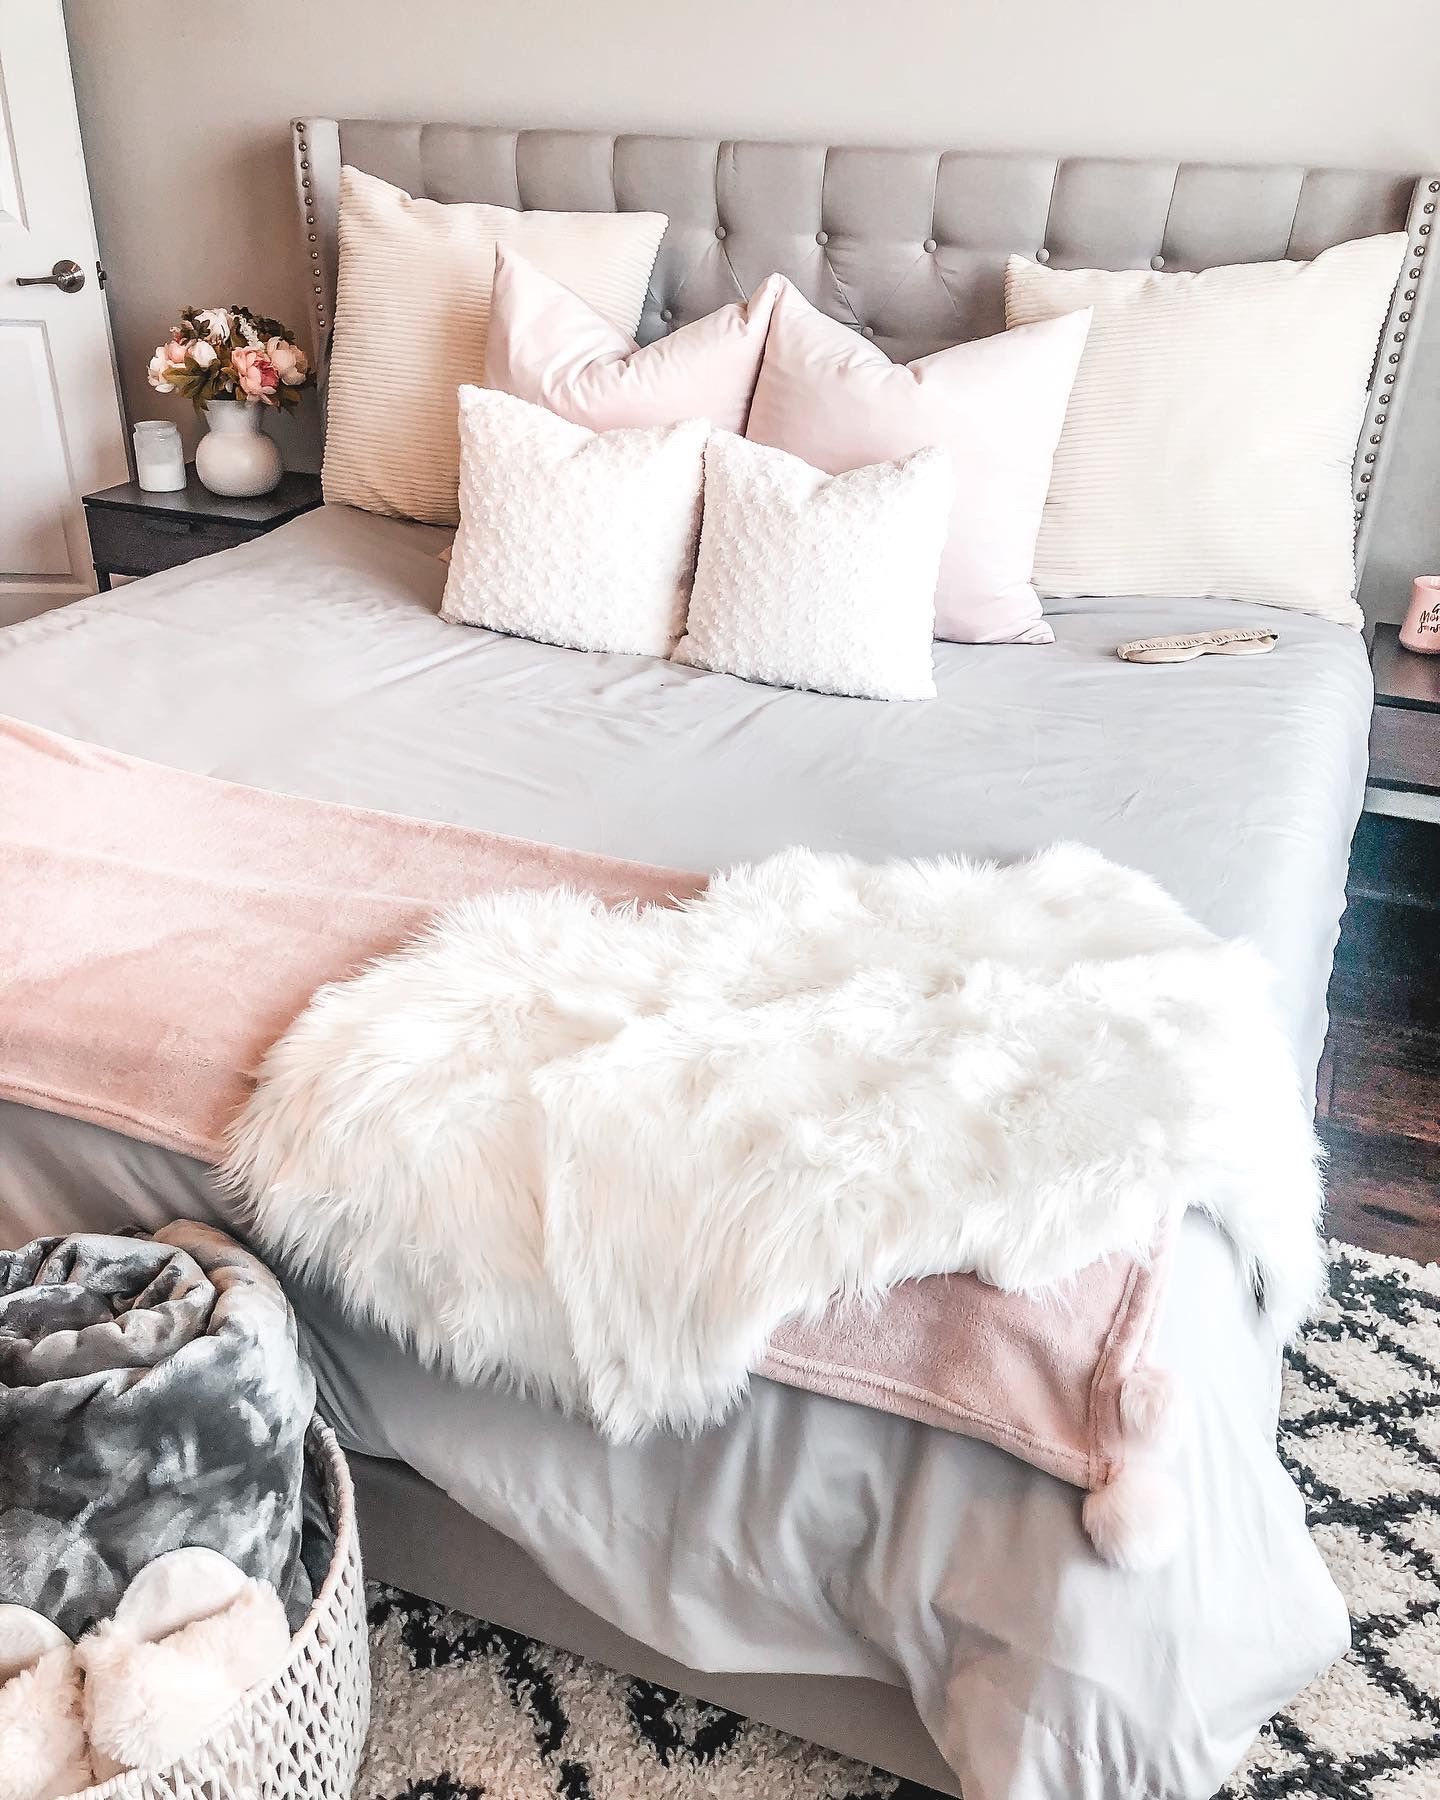 Cute and Cozy pink gray and white bedroom inspo! in 2020